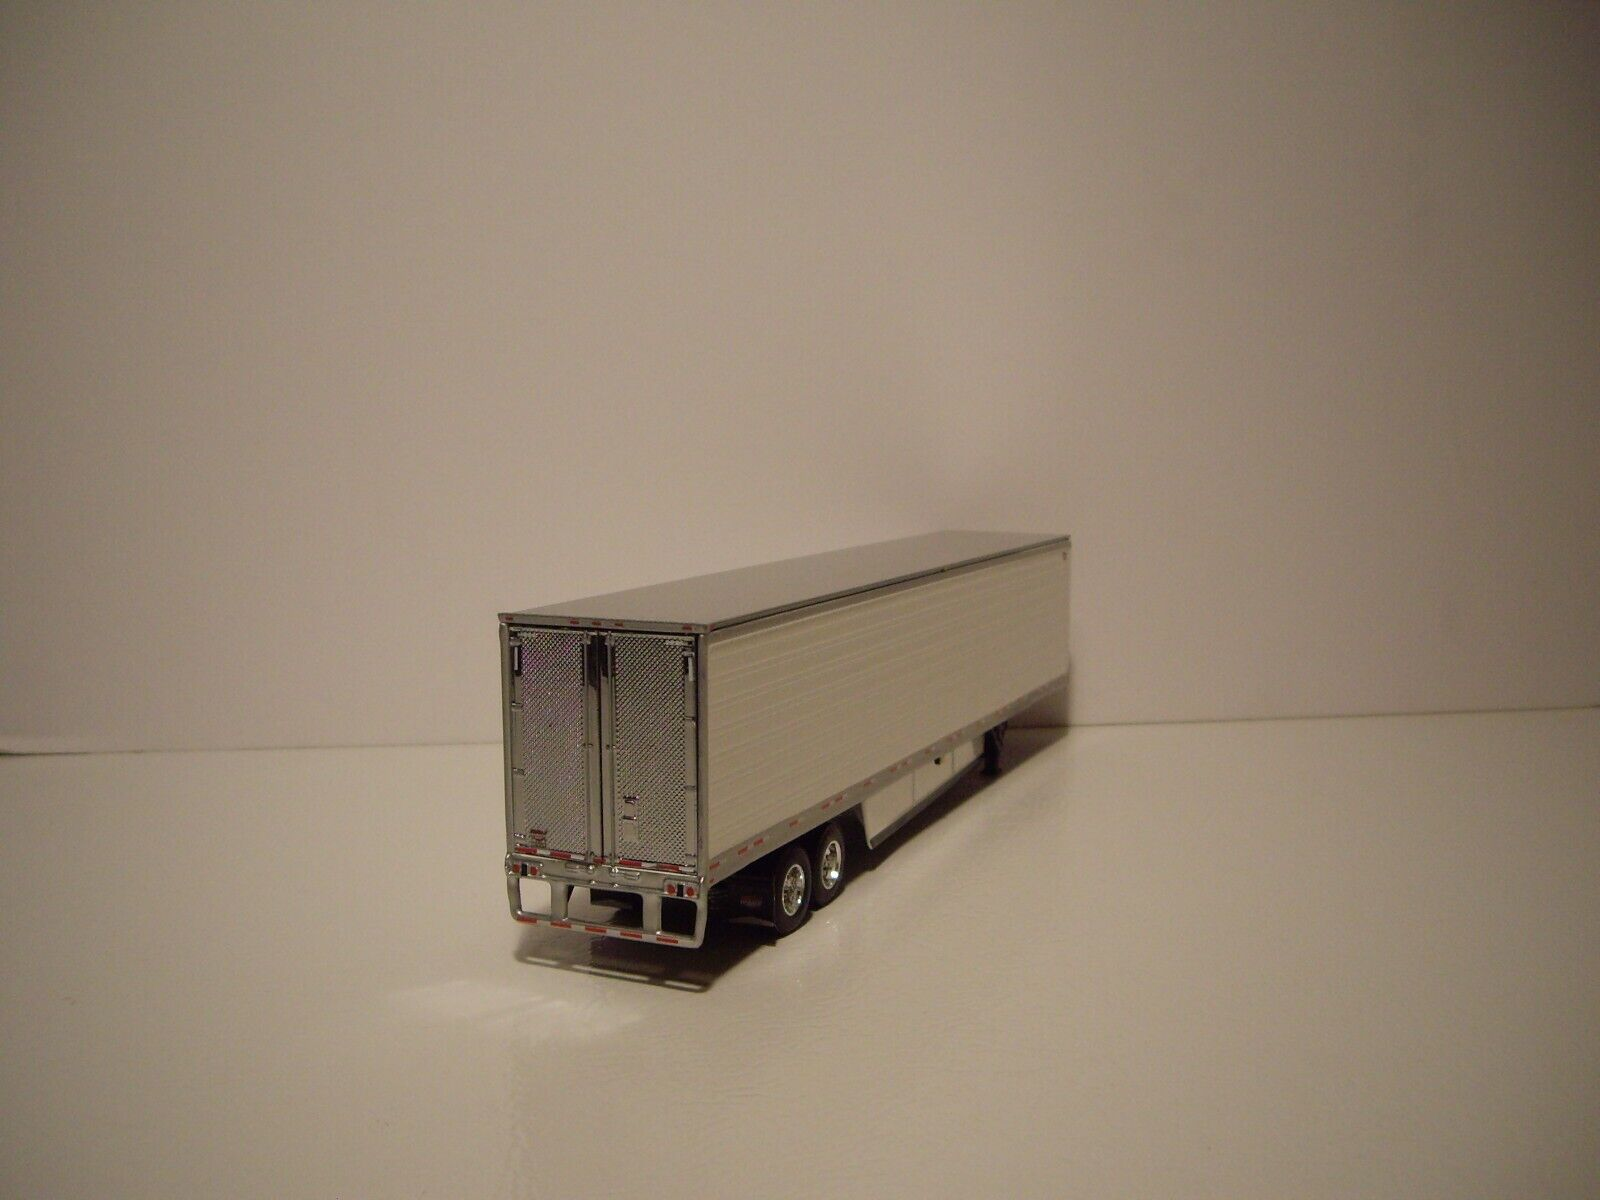 DCP FIRST GEAR 1/64 53' WABASH WHITE ARCTICLITE TANDEM AXLE REEFER VAN 2